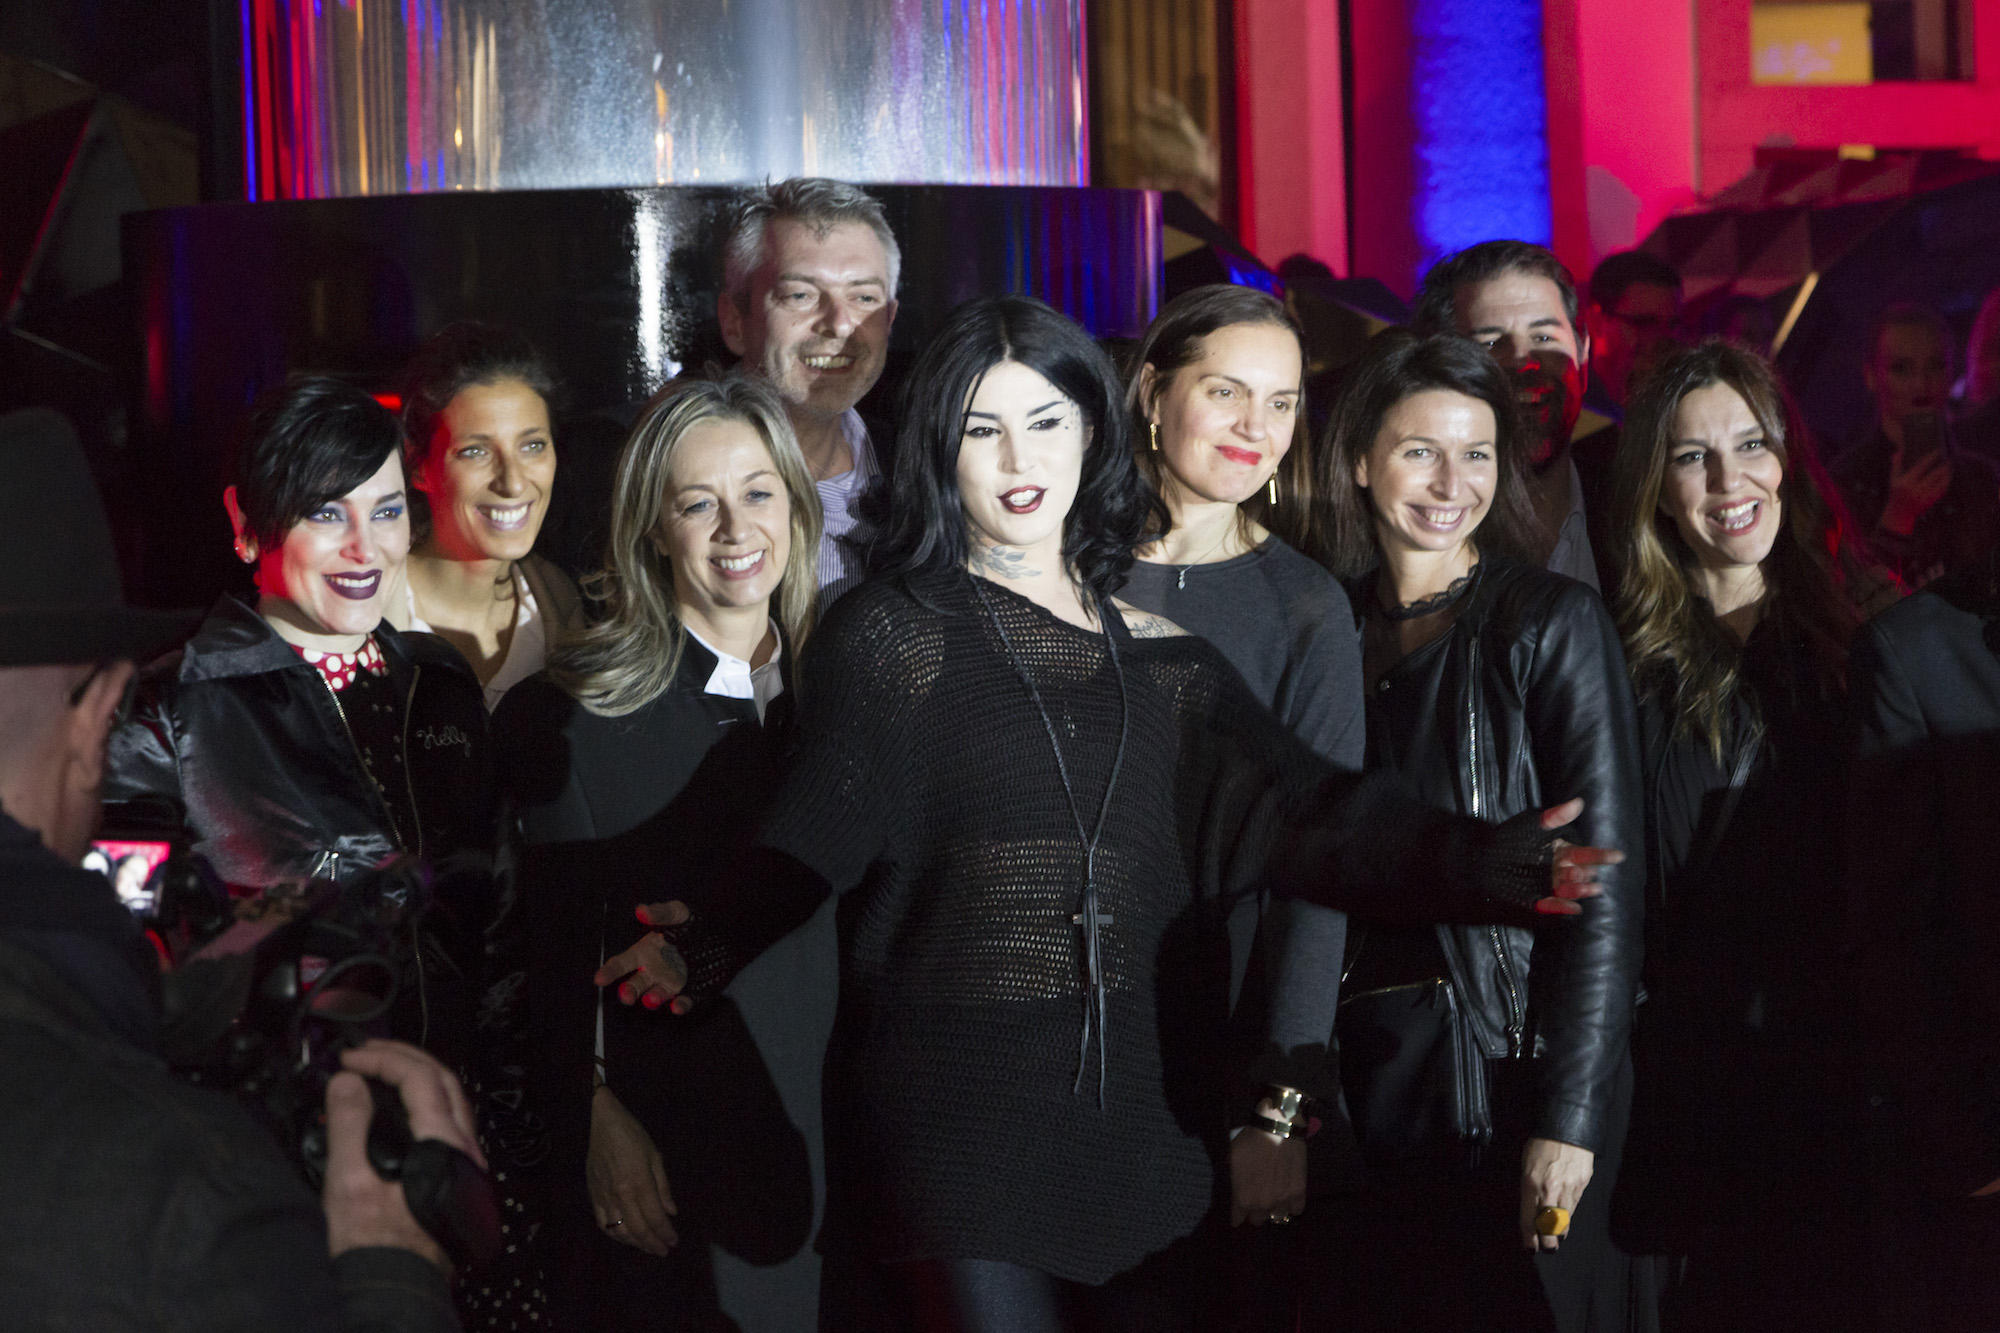 In Statale arriva anche Kat Von D